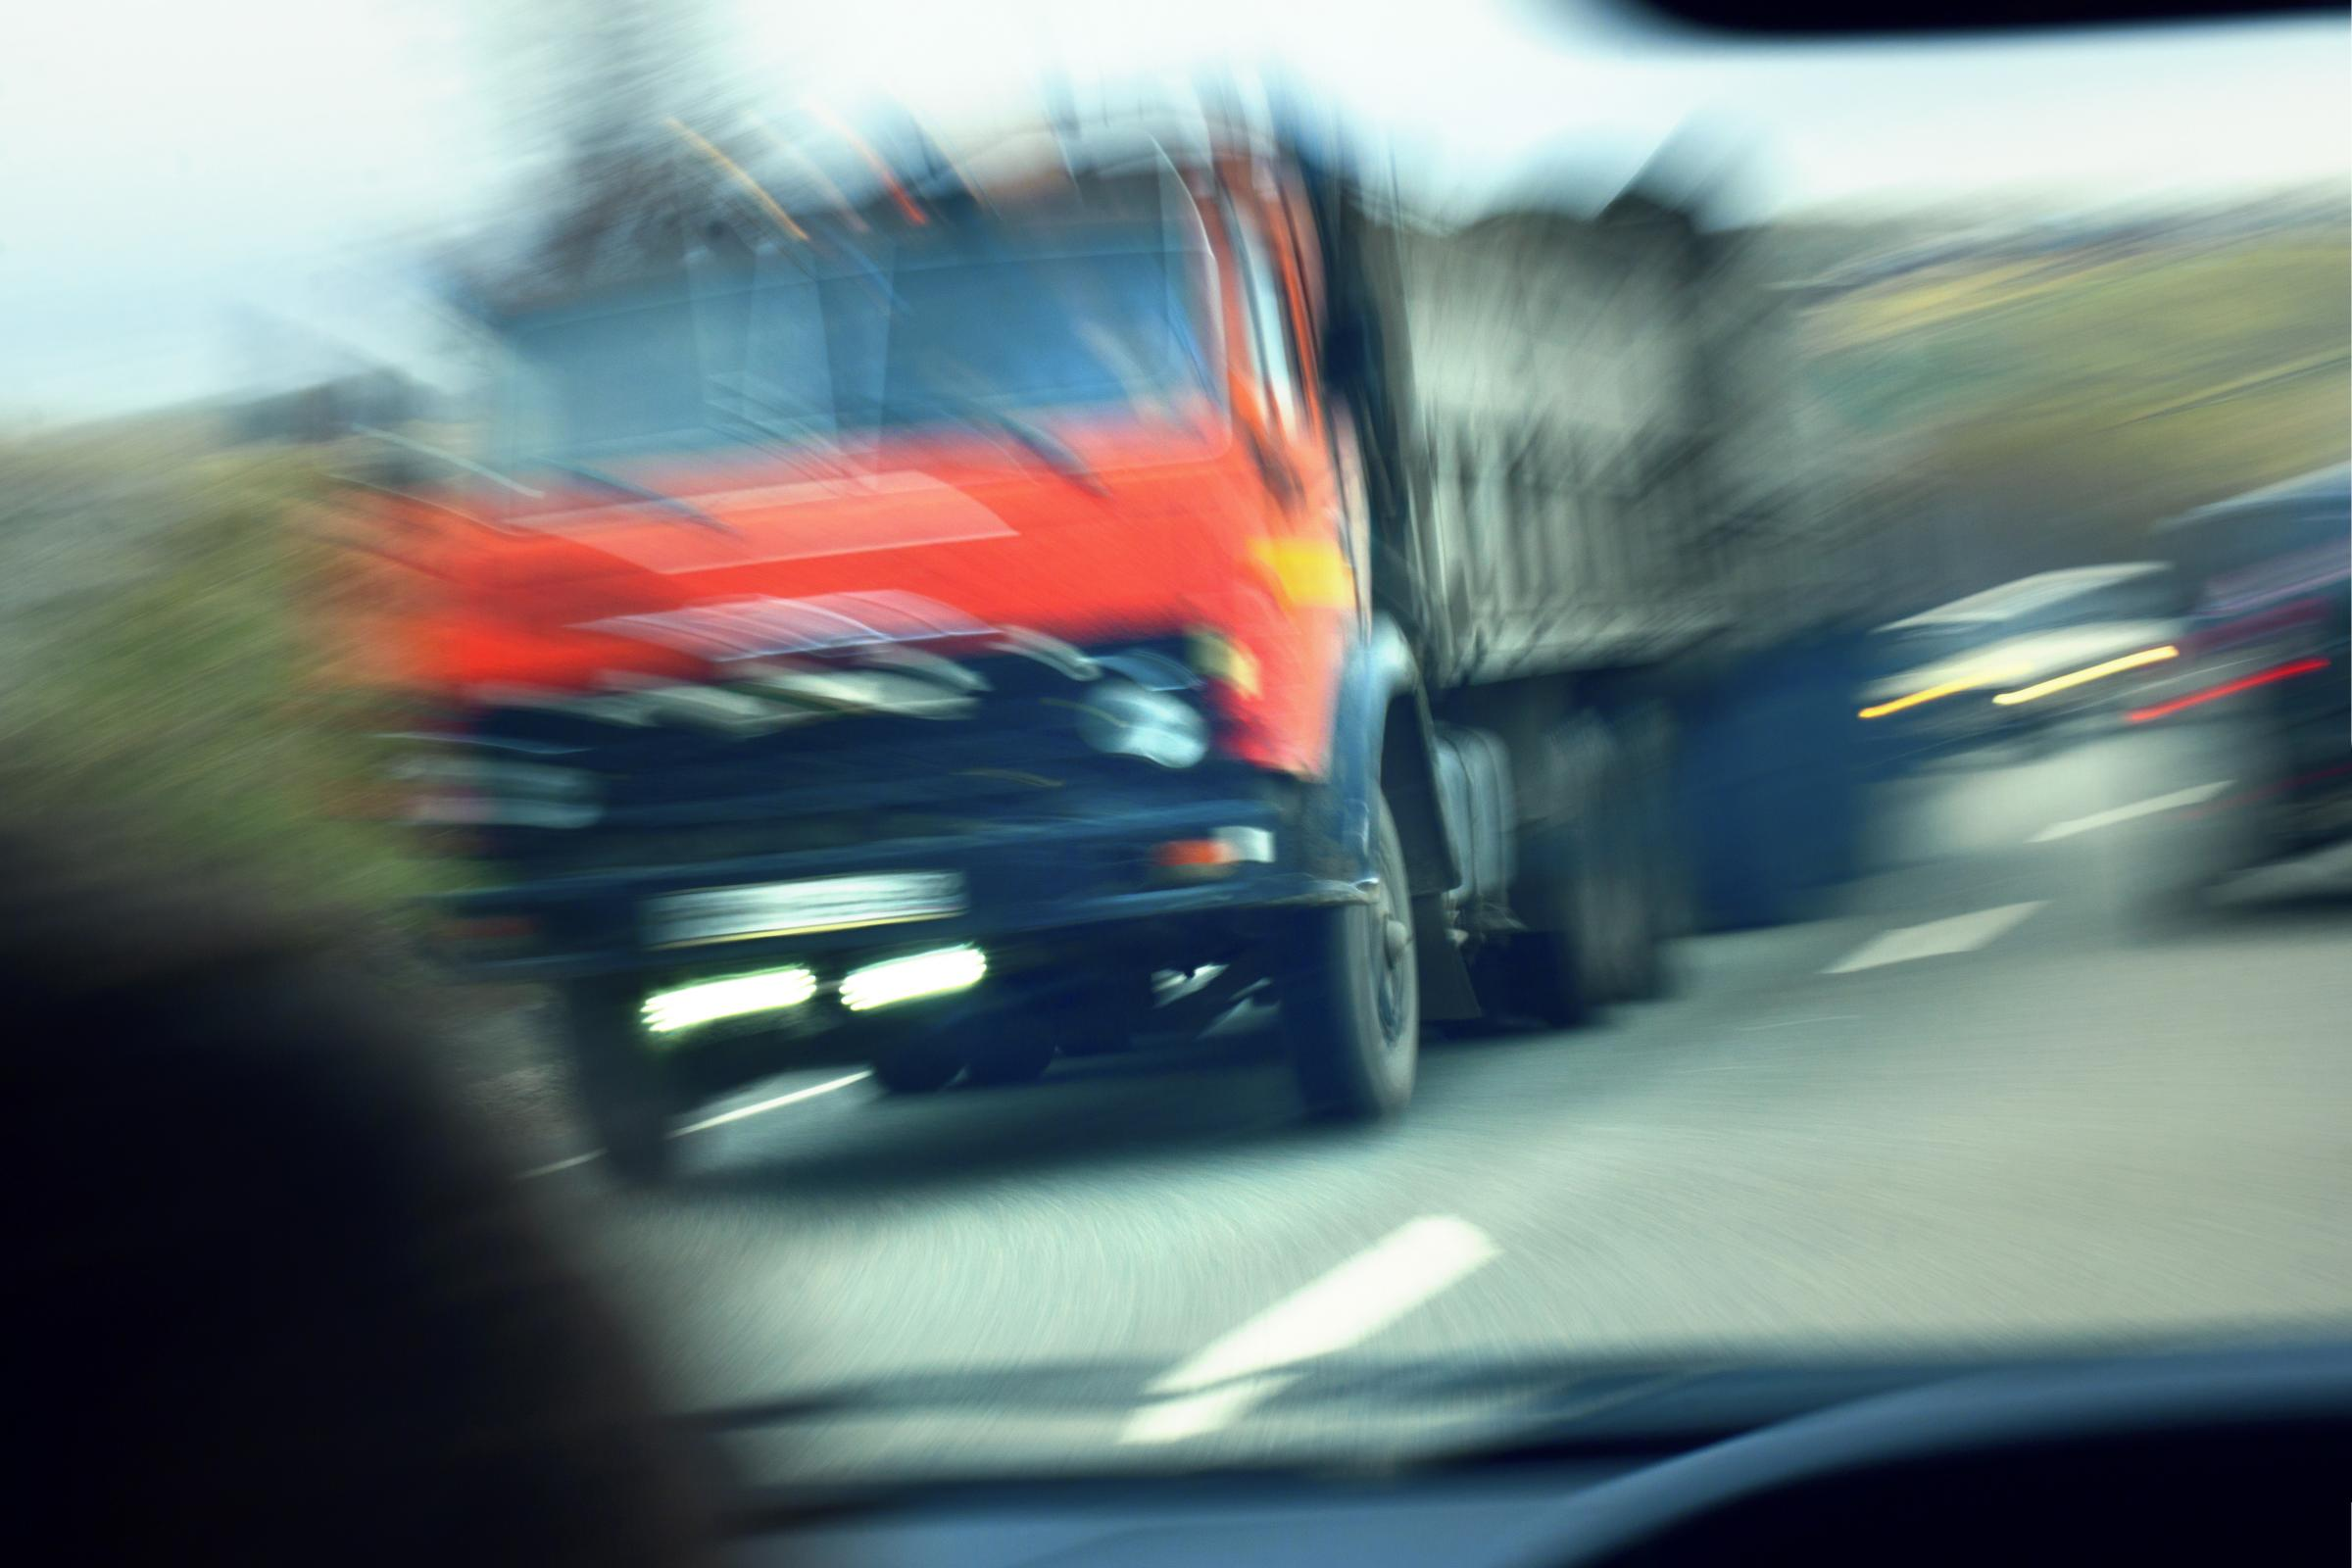 truck about to crash head-on with another car